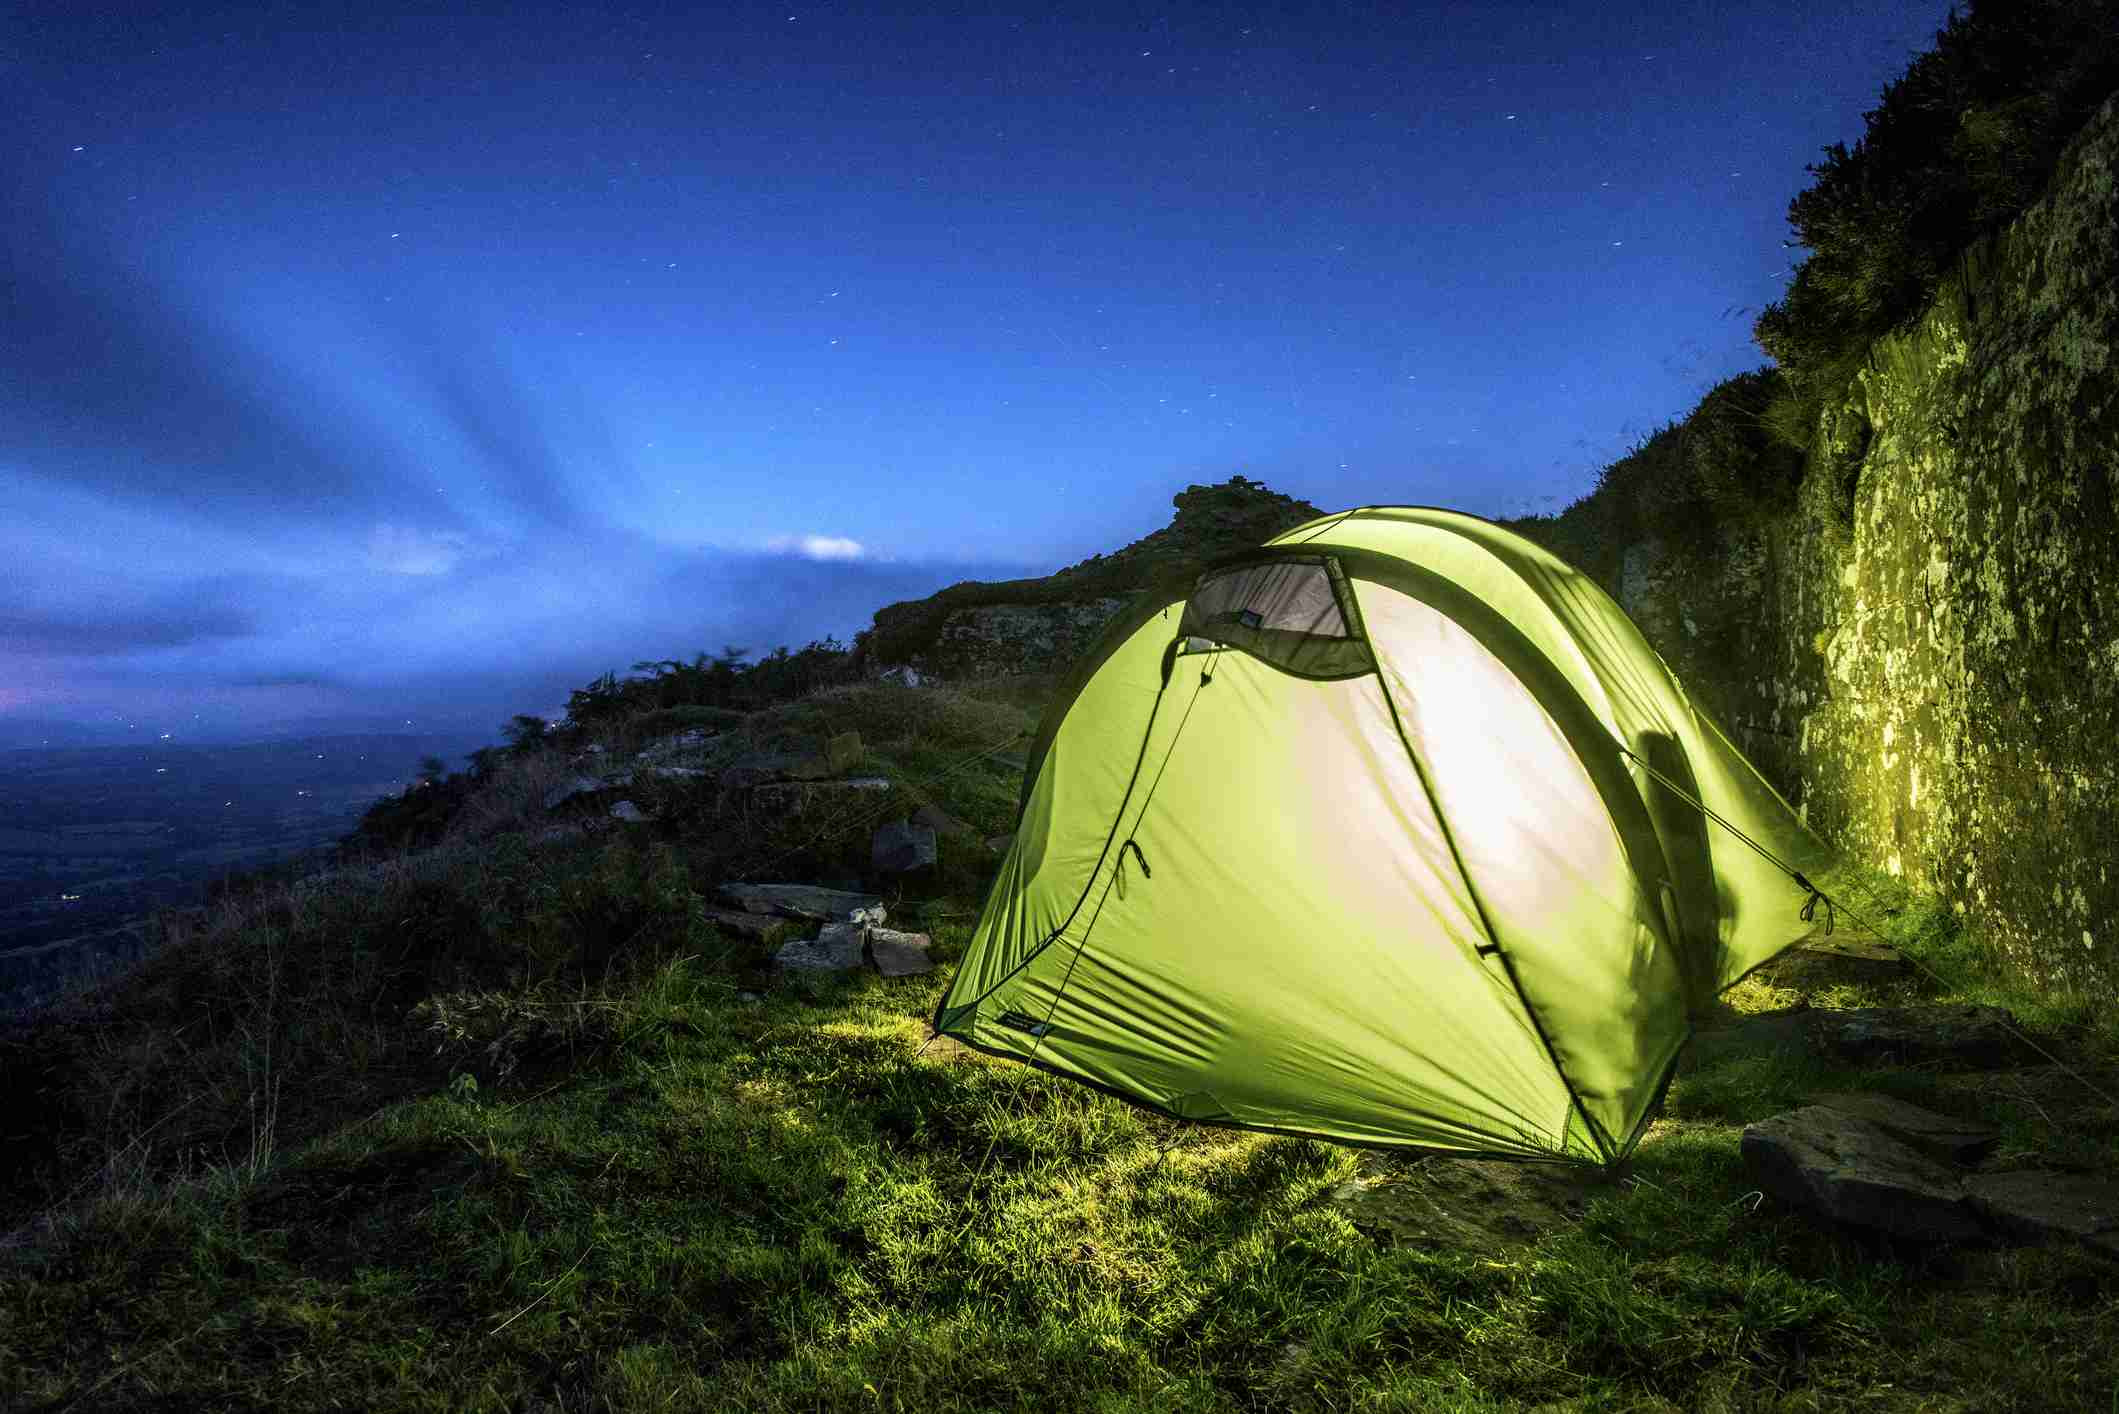 Wild camping on Black Hill in the Black Mountains on the border between England and Wales